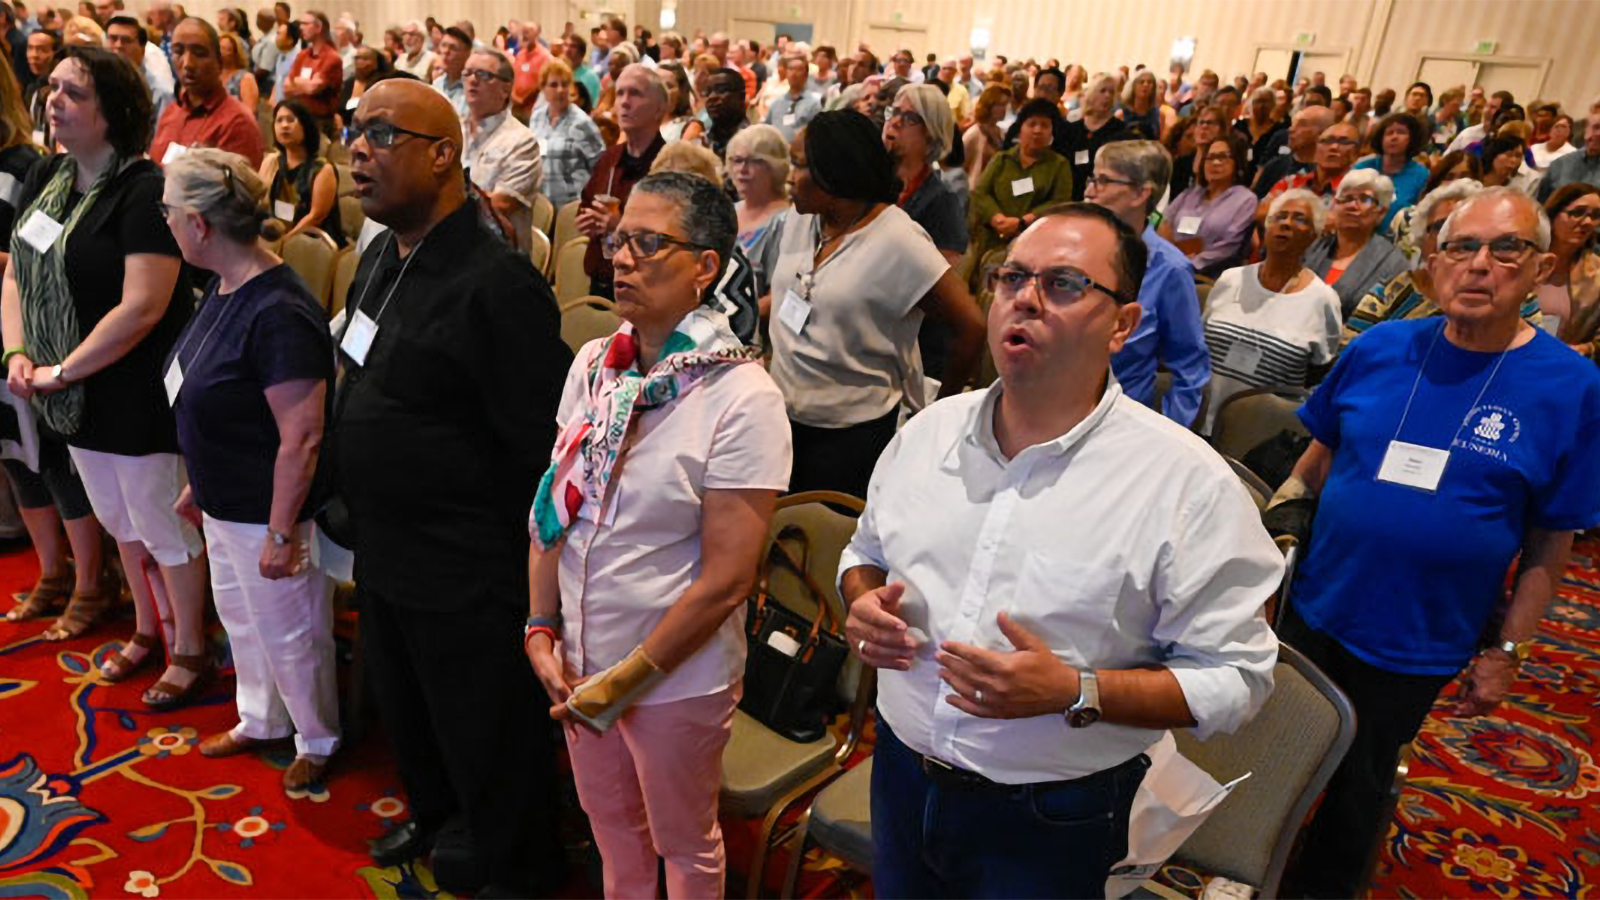 Nearly 800 Presbyterians are gathered in Baltimore through Saturday for Big Tent. (Photo by Rich Copley)